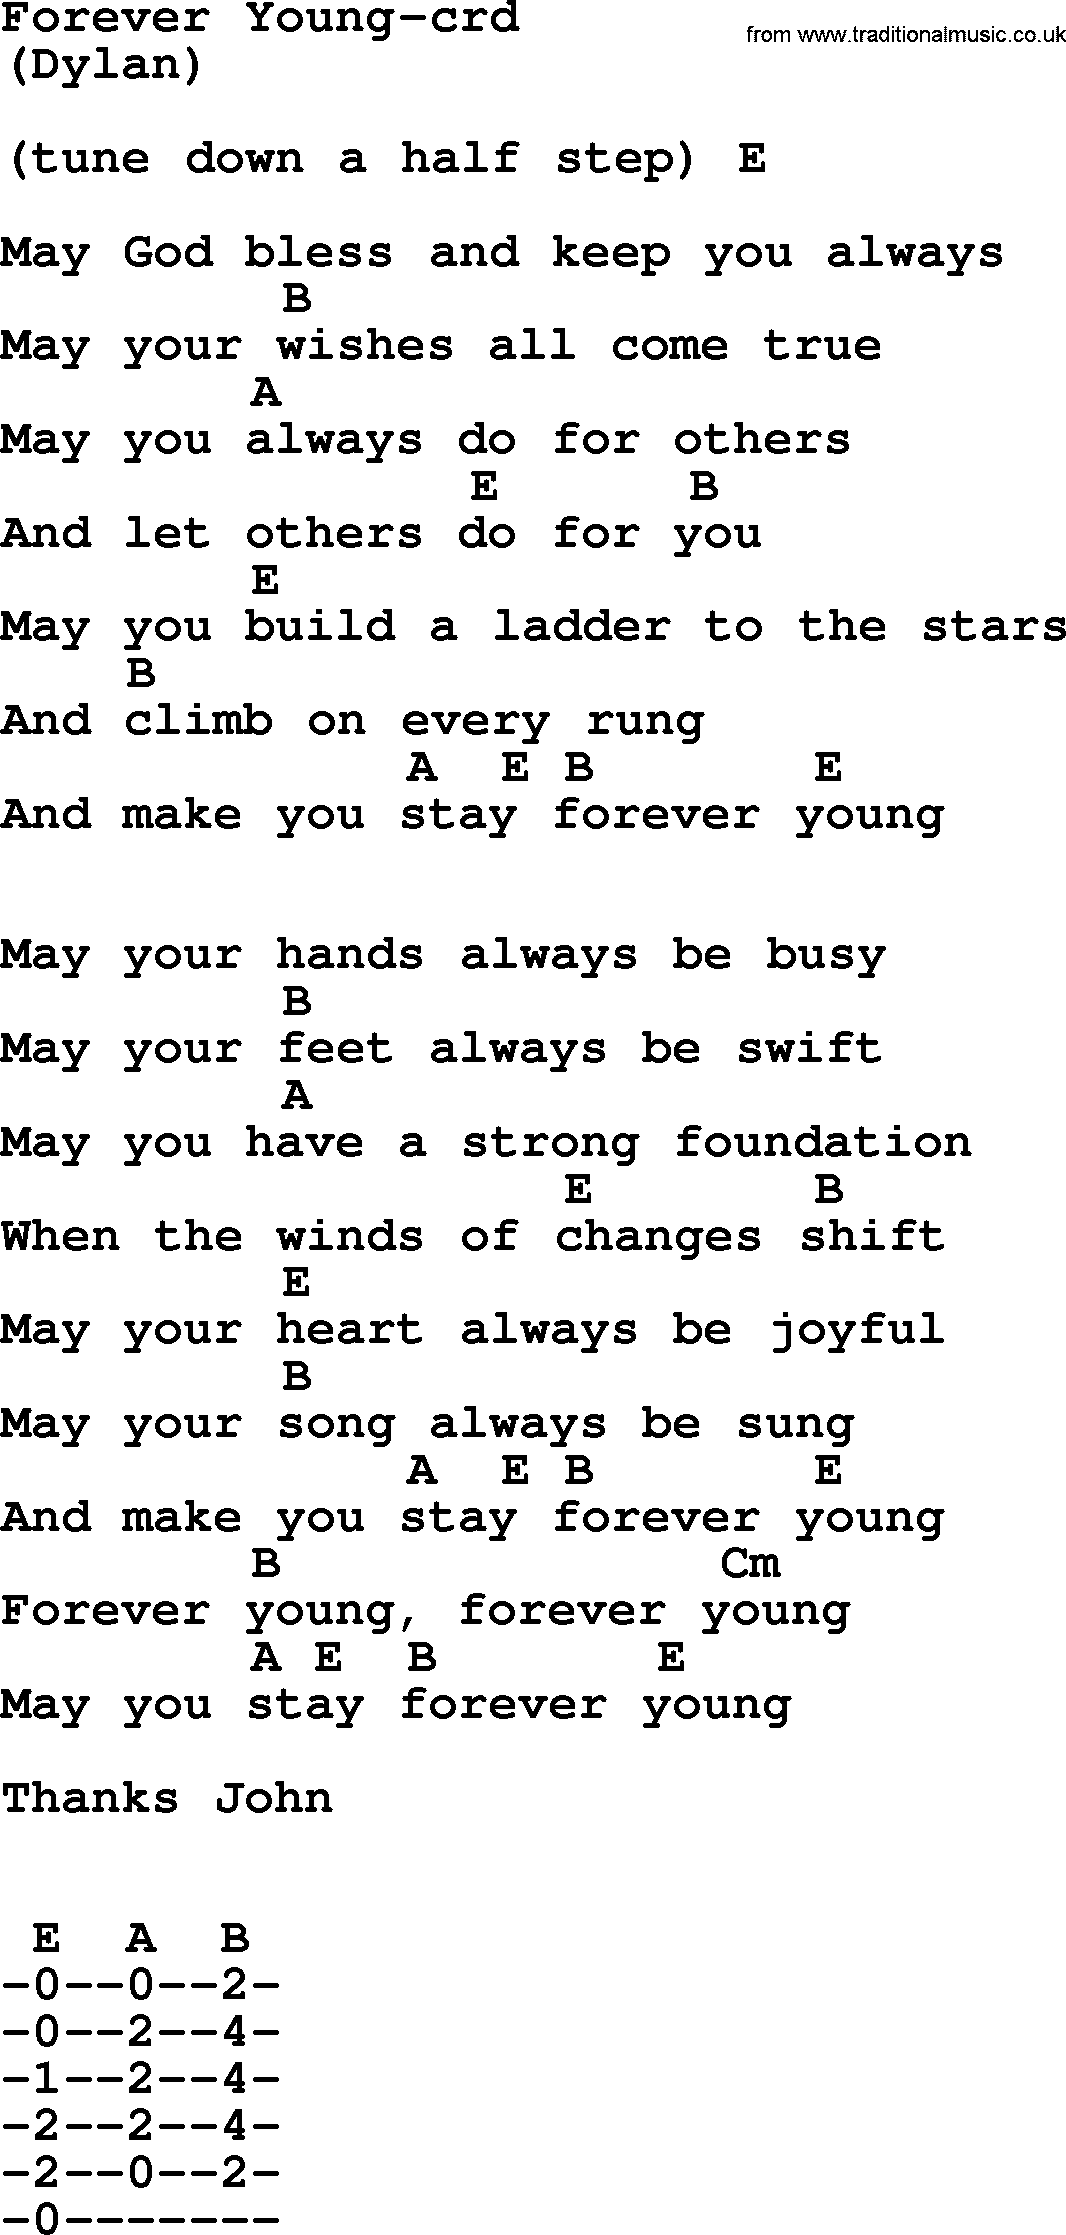 Guitar chords forever young